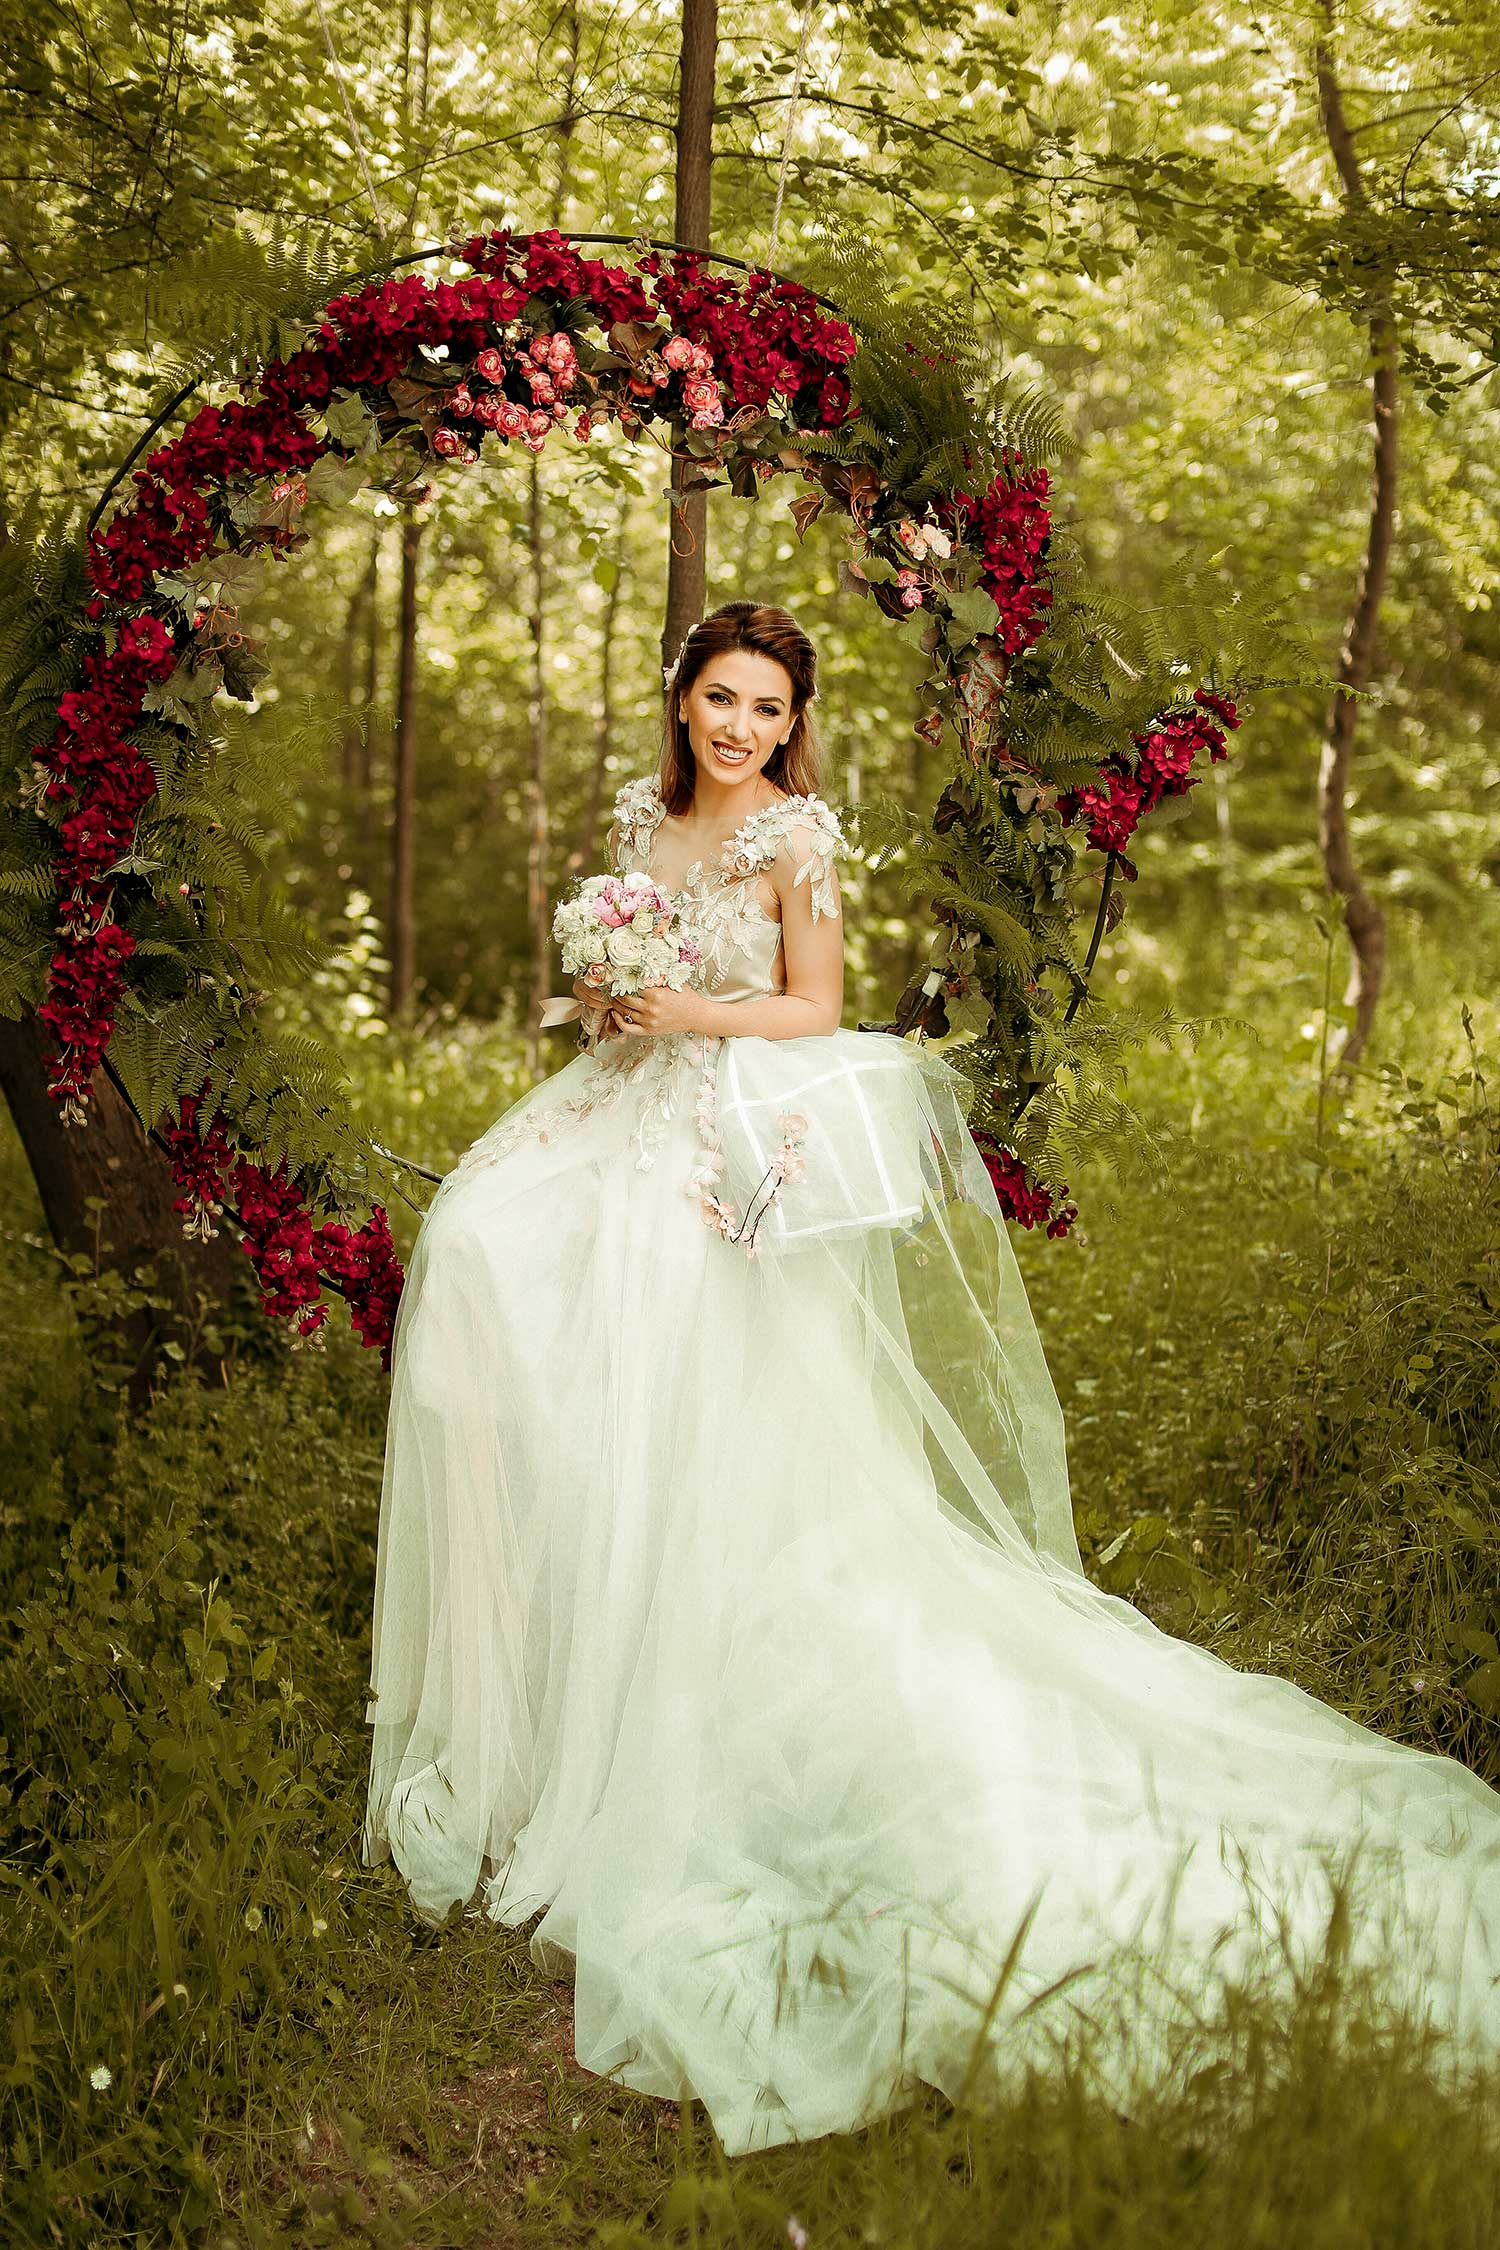 Bride posing with red flowers